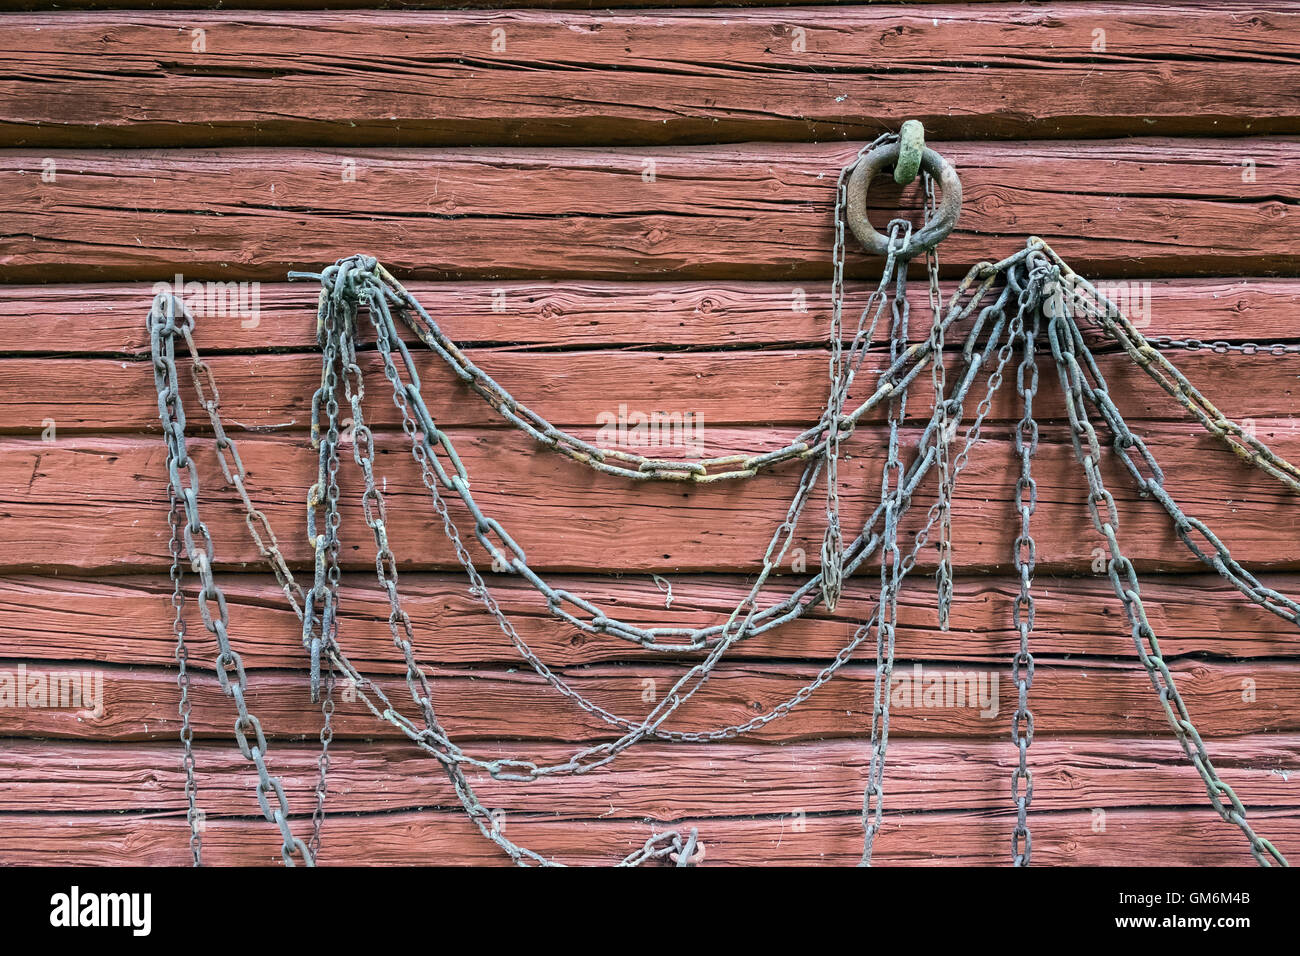 Chains on timbered wall - Stock Image